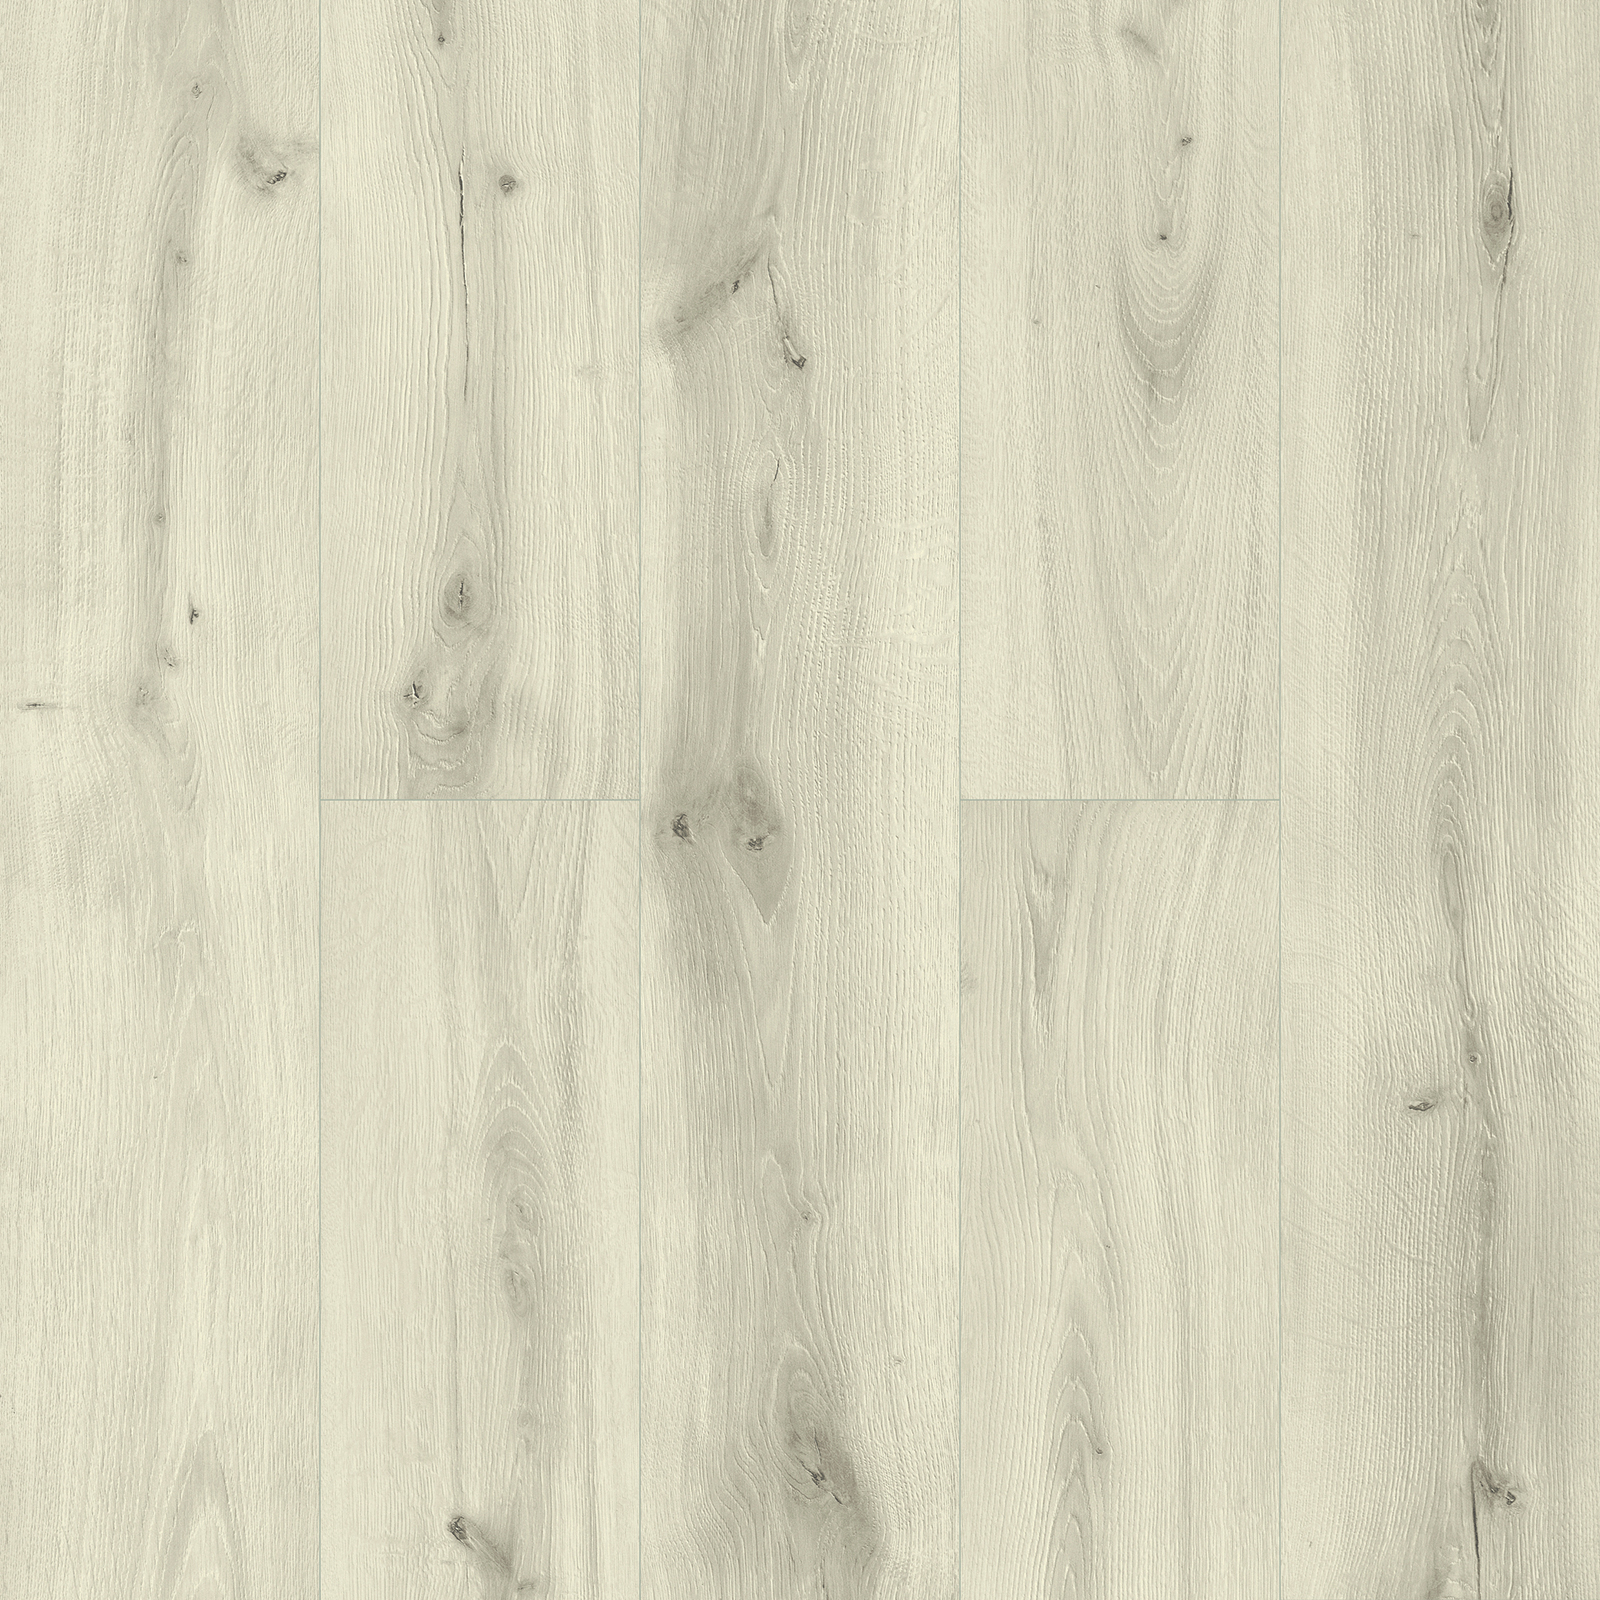 Brushed, Downing Oak (4352)